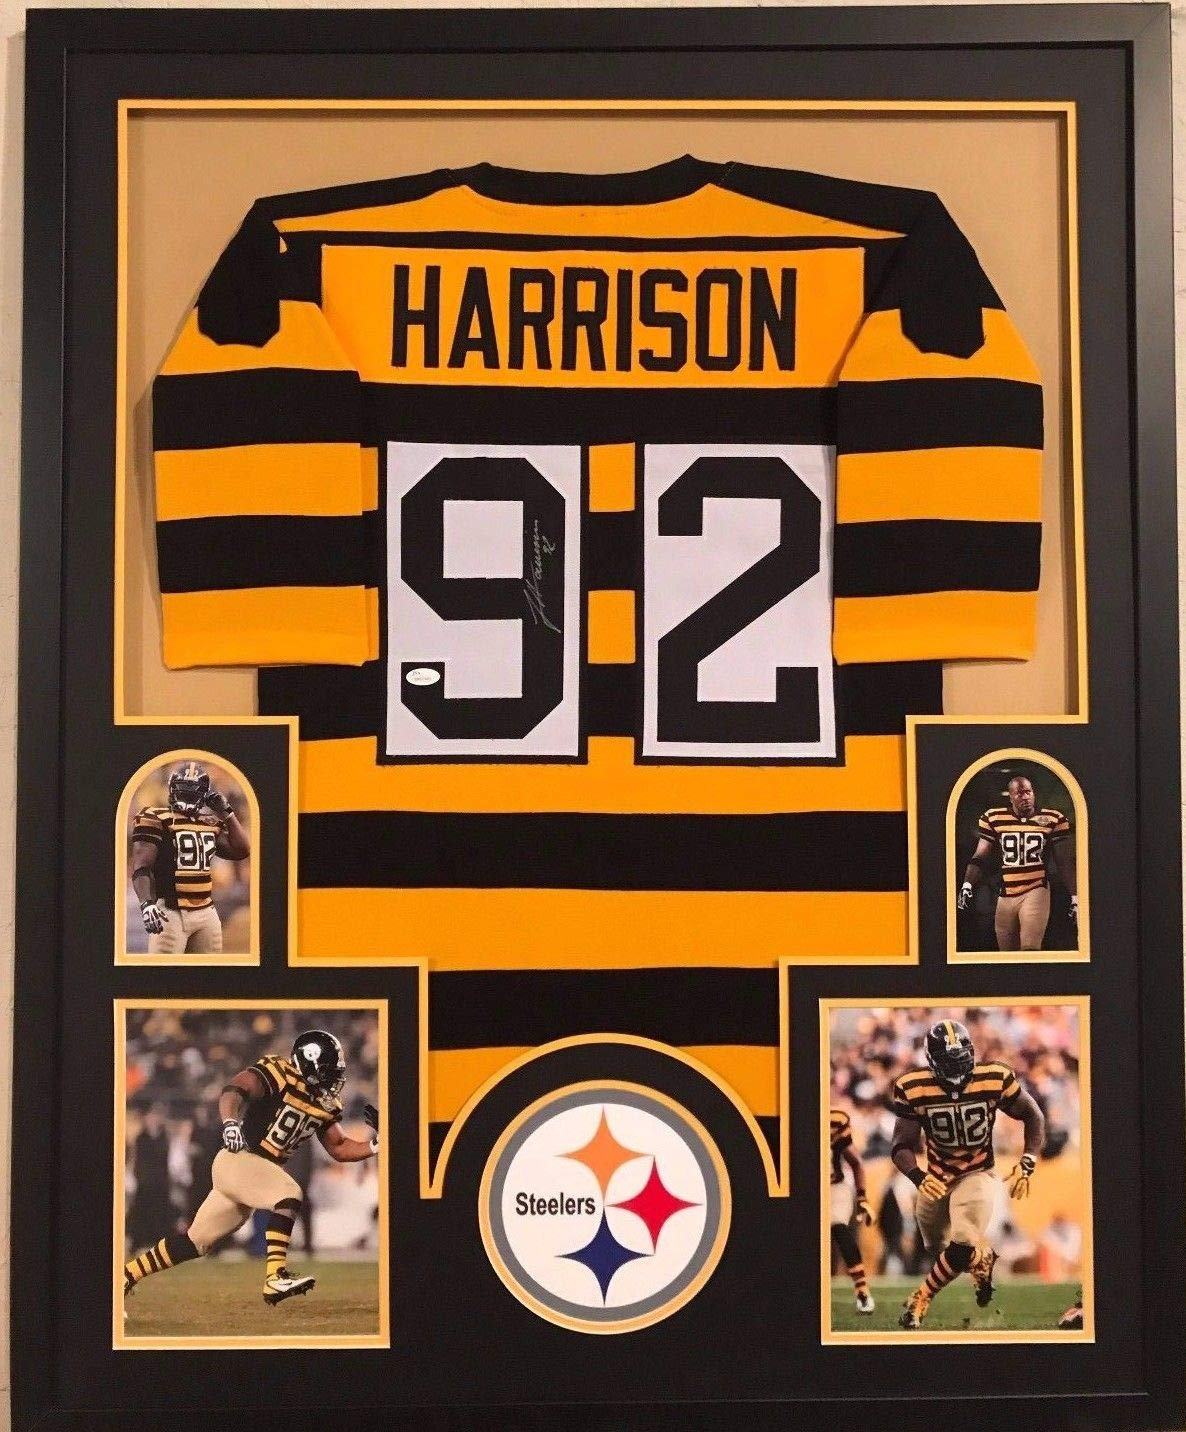 on sale ac23b 5c1f8 FRAMED JAMES HARRISON AUTOGRAPHED SIGNED PITTSBURGH STEELERS ...